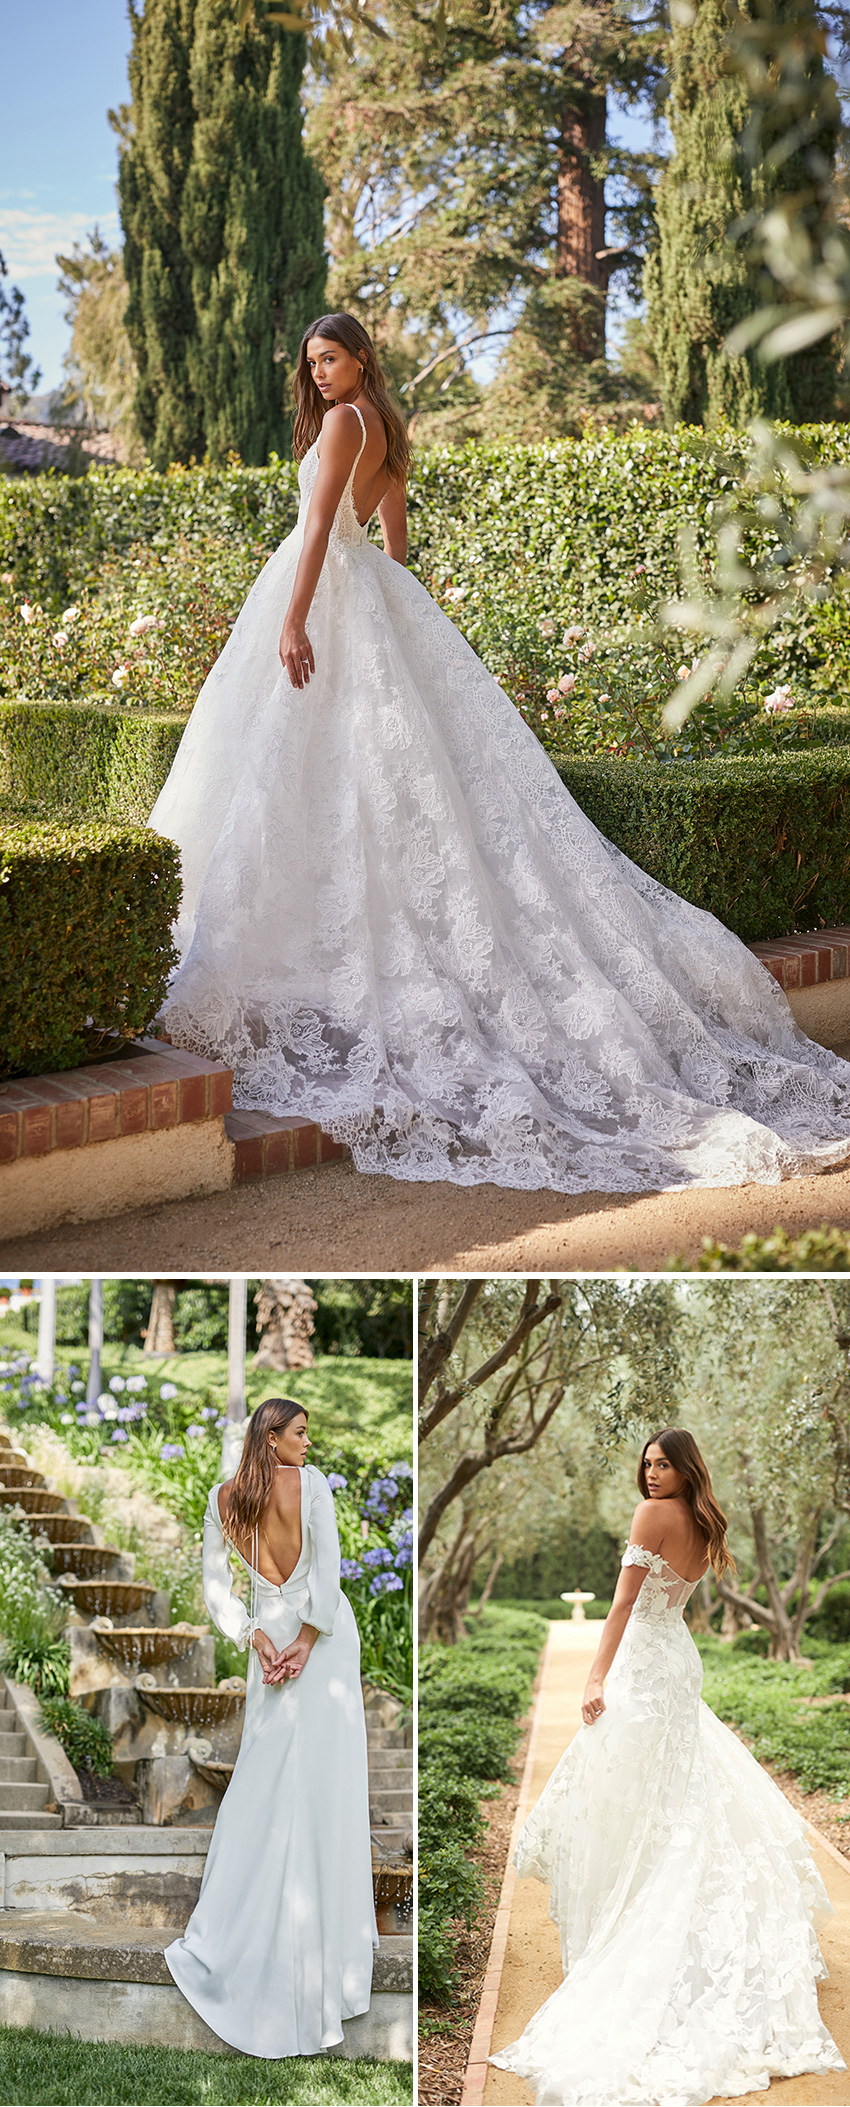 Monique Lhuillier Spring 2021 bridal collection features luminous embroideries as seen in Perfect Wedding Magazine